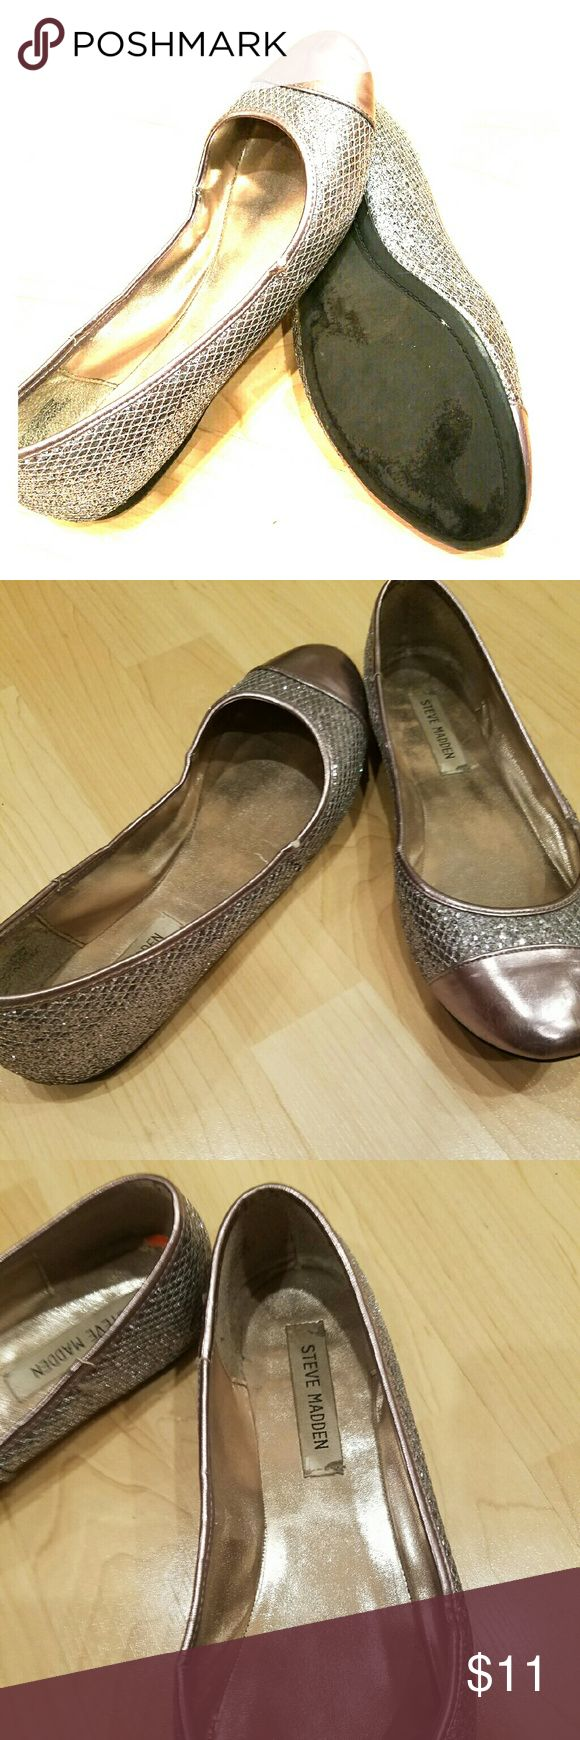 Steve Madden sparkling shoes Silver sequence with a light bronze/pink solid color on the toe and top rim of shoe. Has a few bad spots along the rim (see pic) and a small scuff in the heel of the left shoe Steve Madden Shoes Flats & Loafers